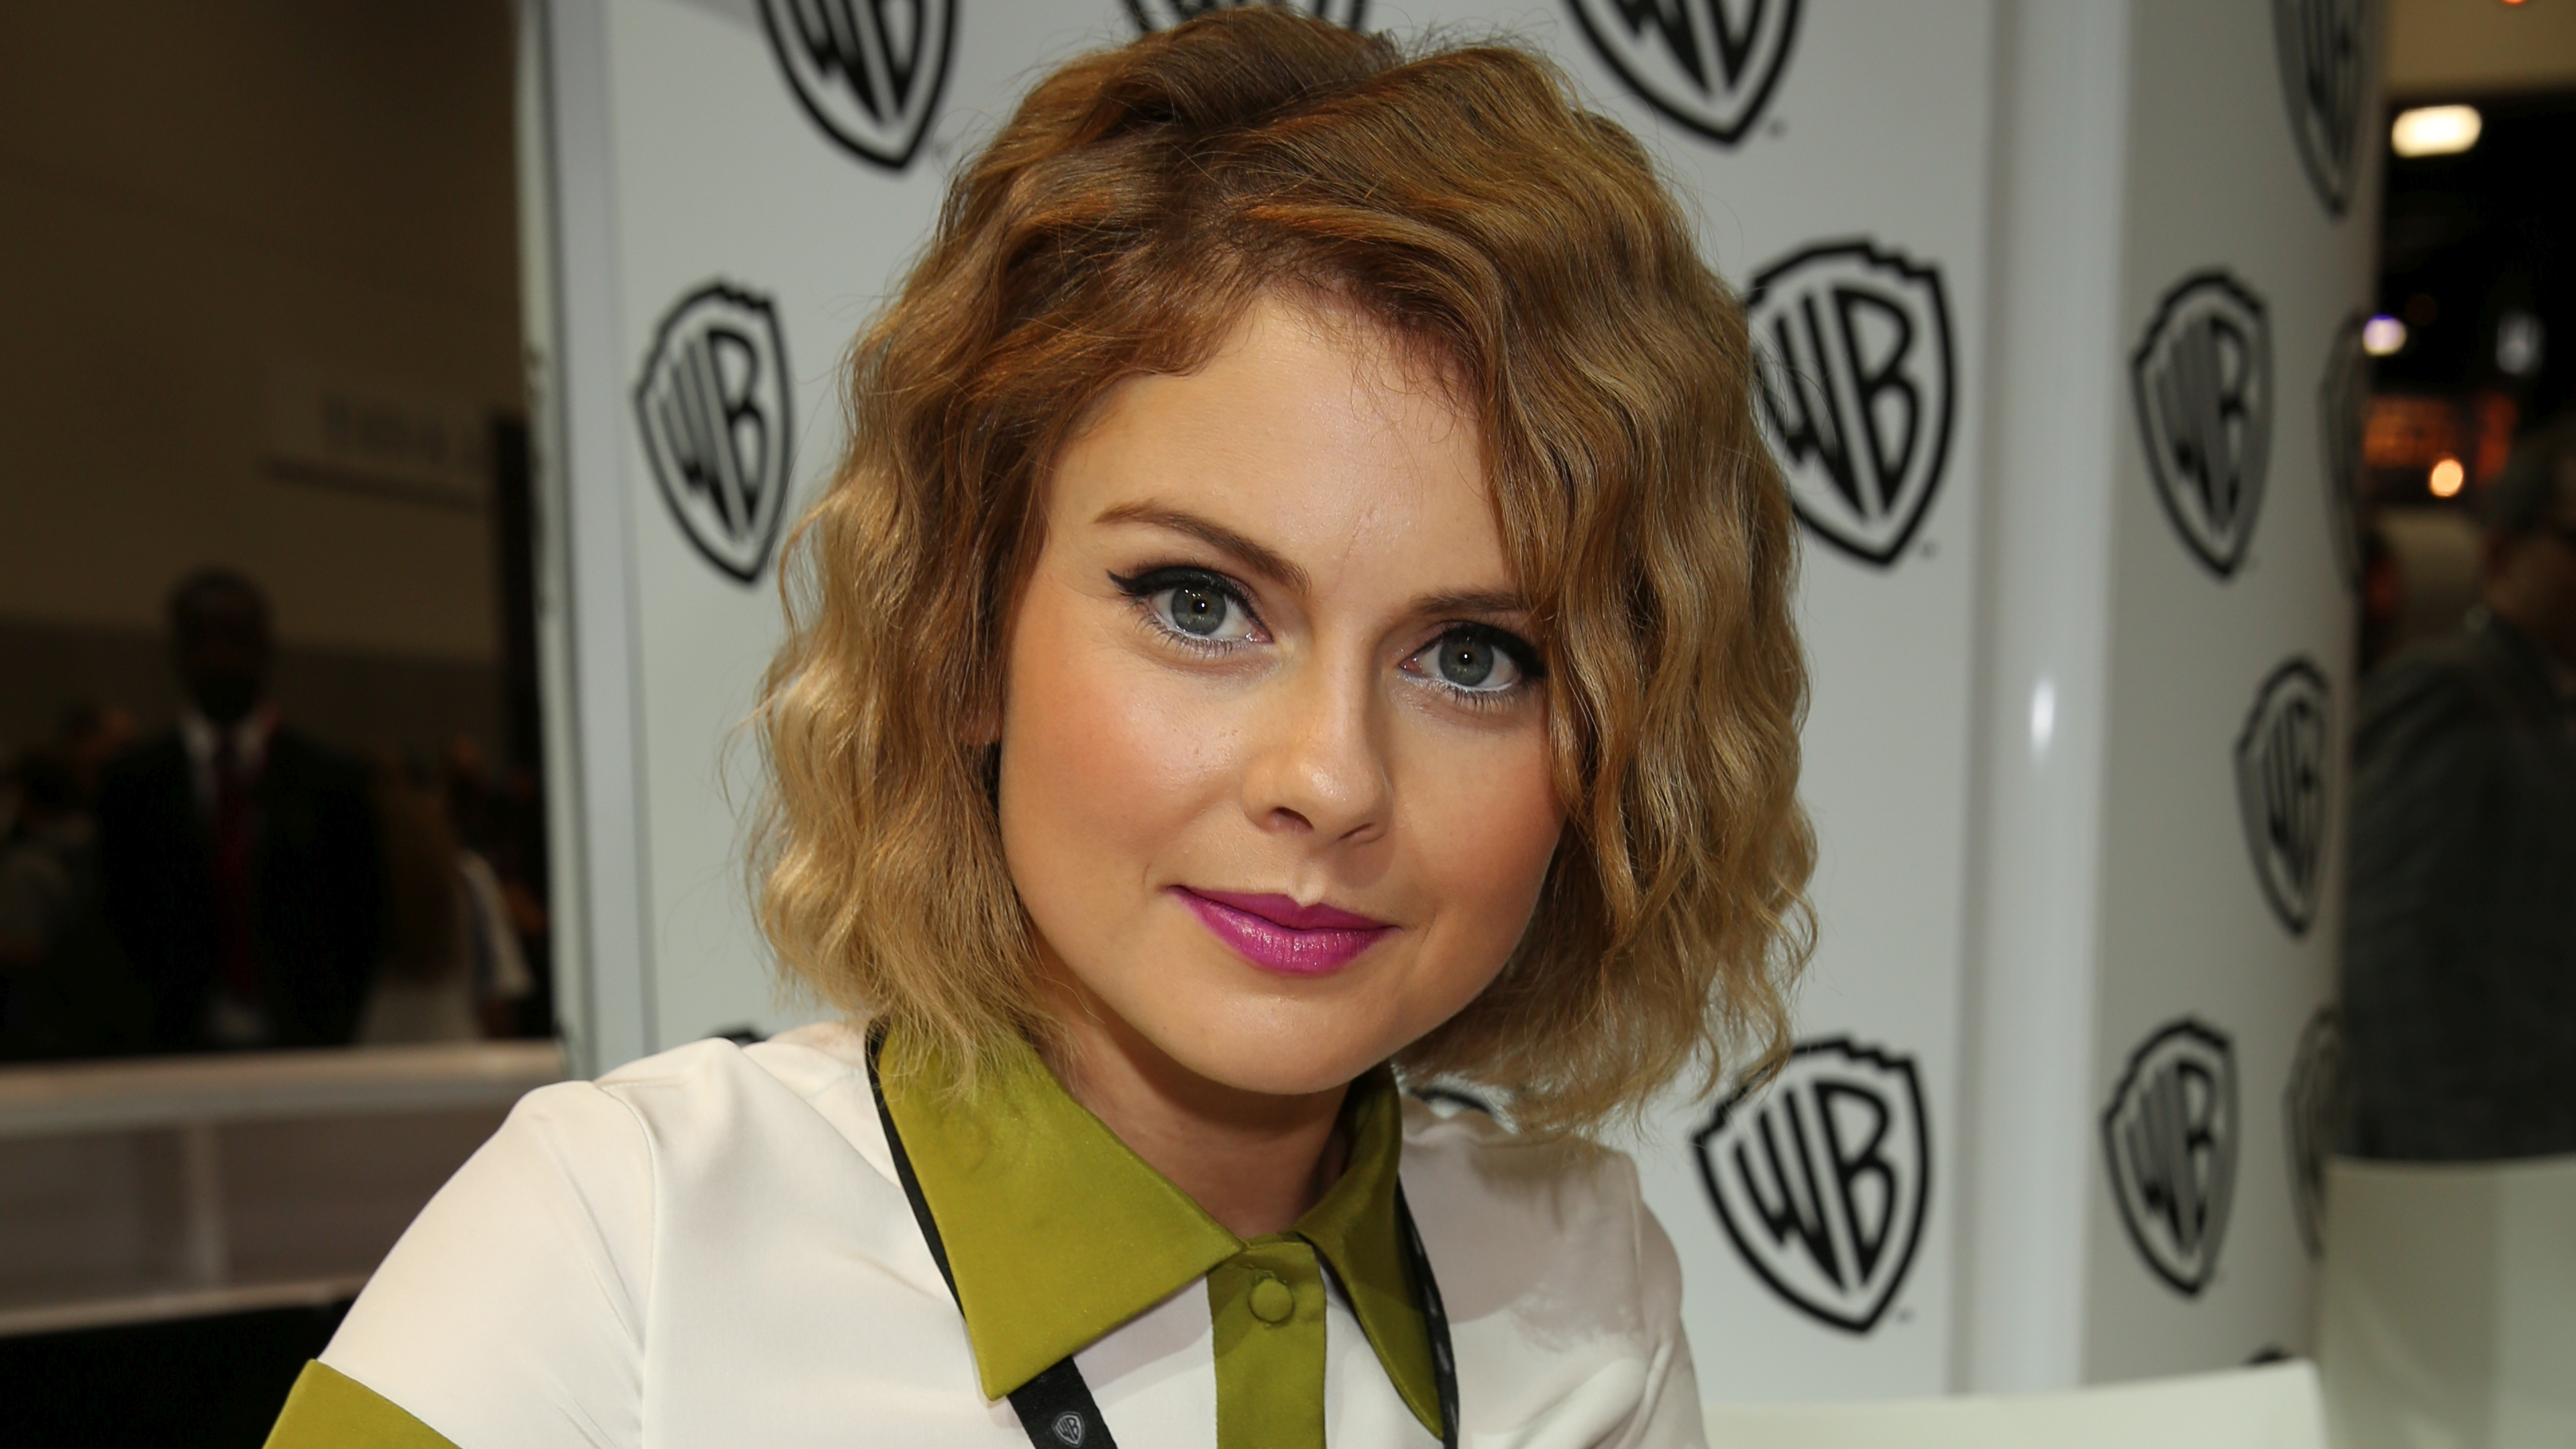 3840x2160 - Rose McIver Wallpapers 23